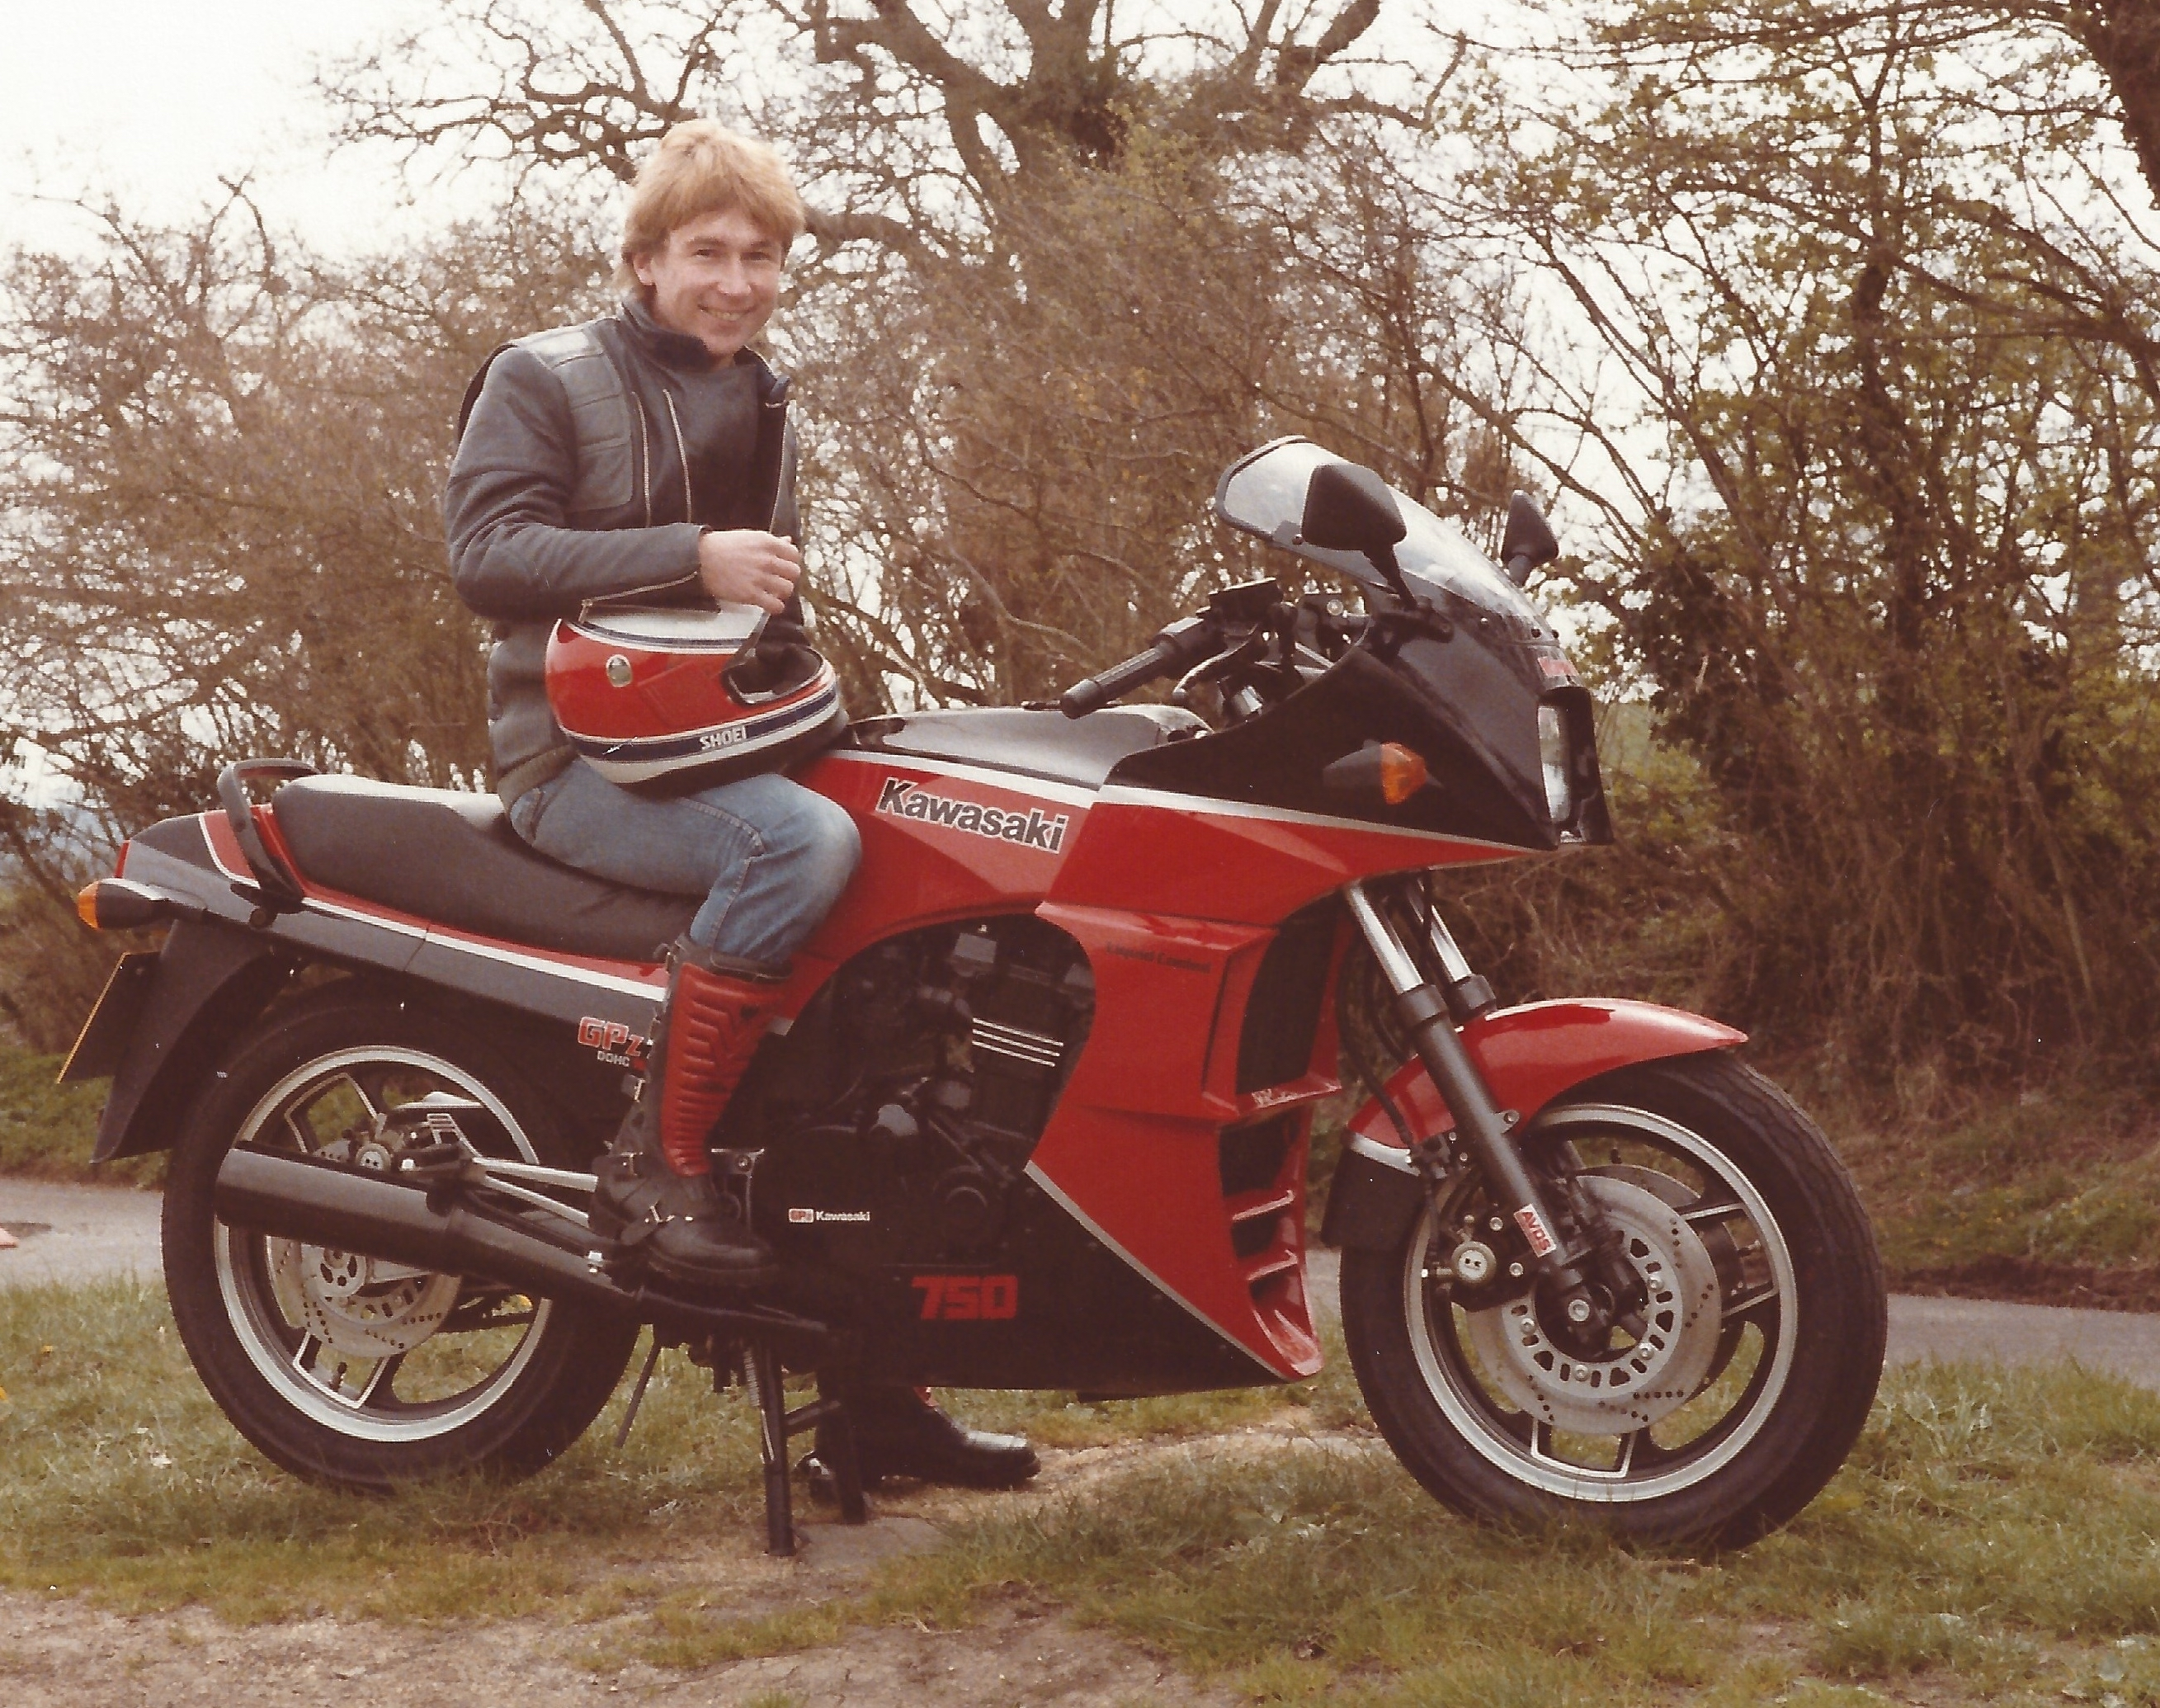 Vince Poynter, in full motorbike clothing and boots, sat on his black and red Kawasaki GPz750R motorcycle, which is stood on it's centre stand on a grass mound